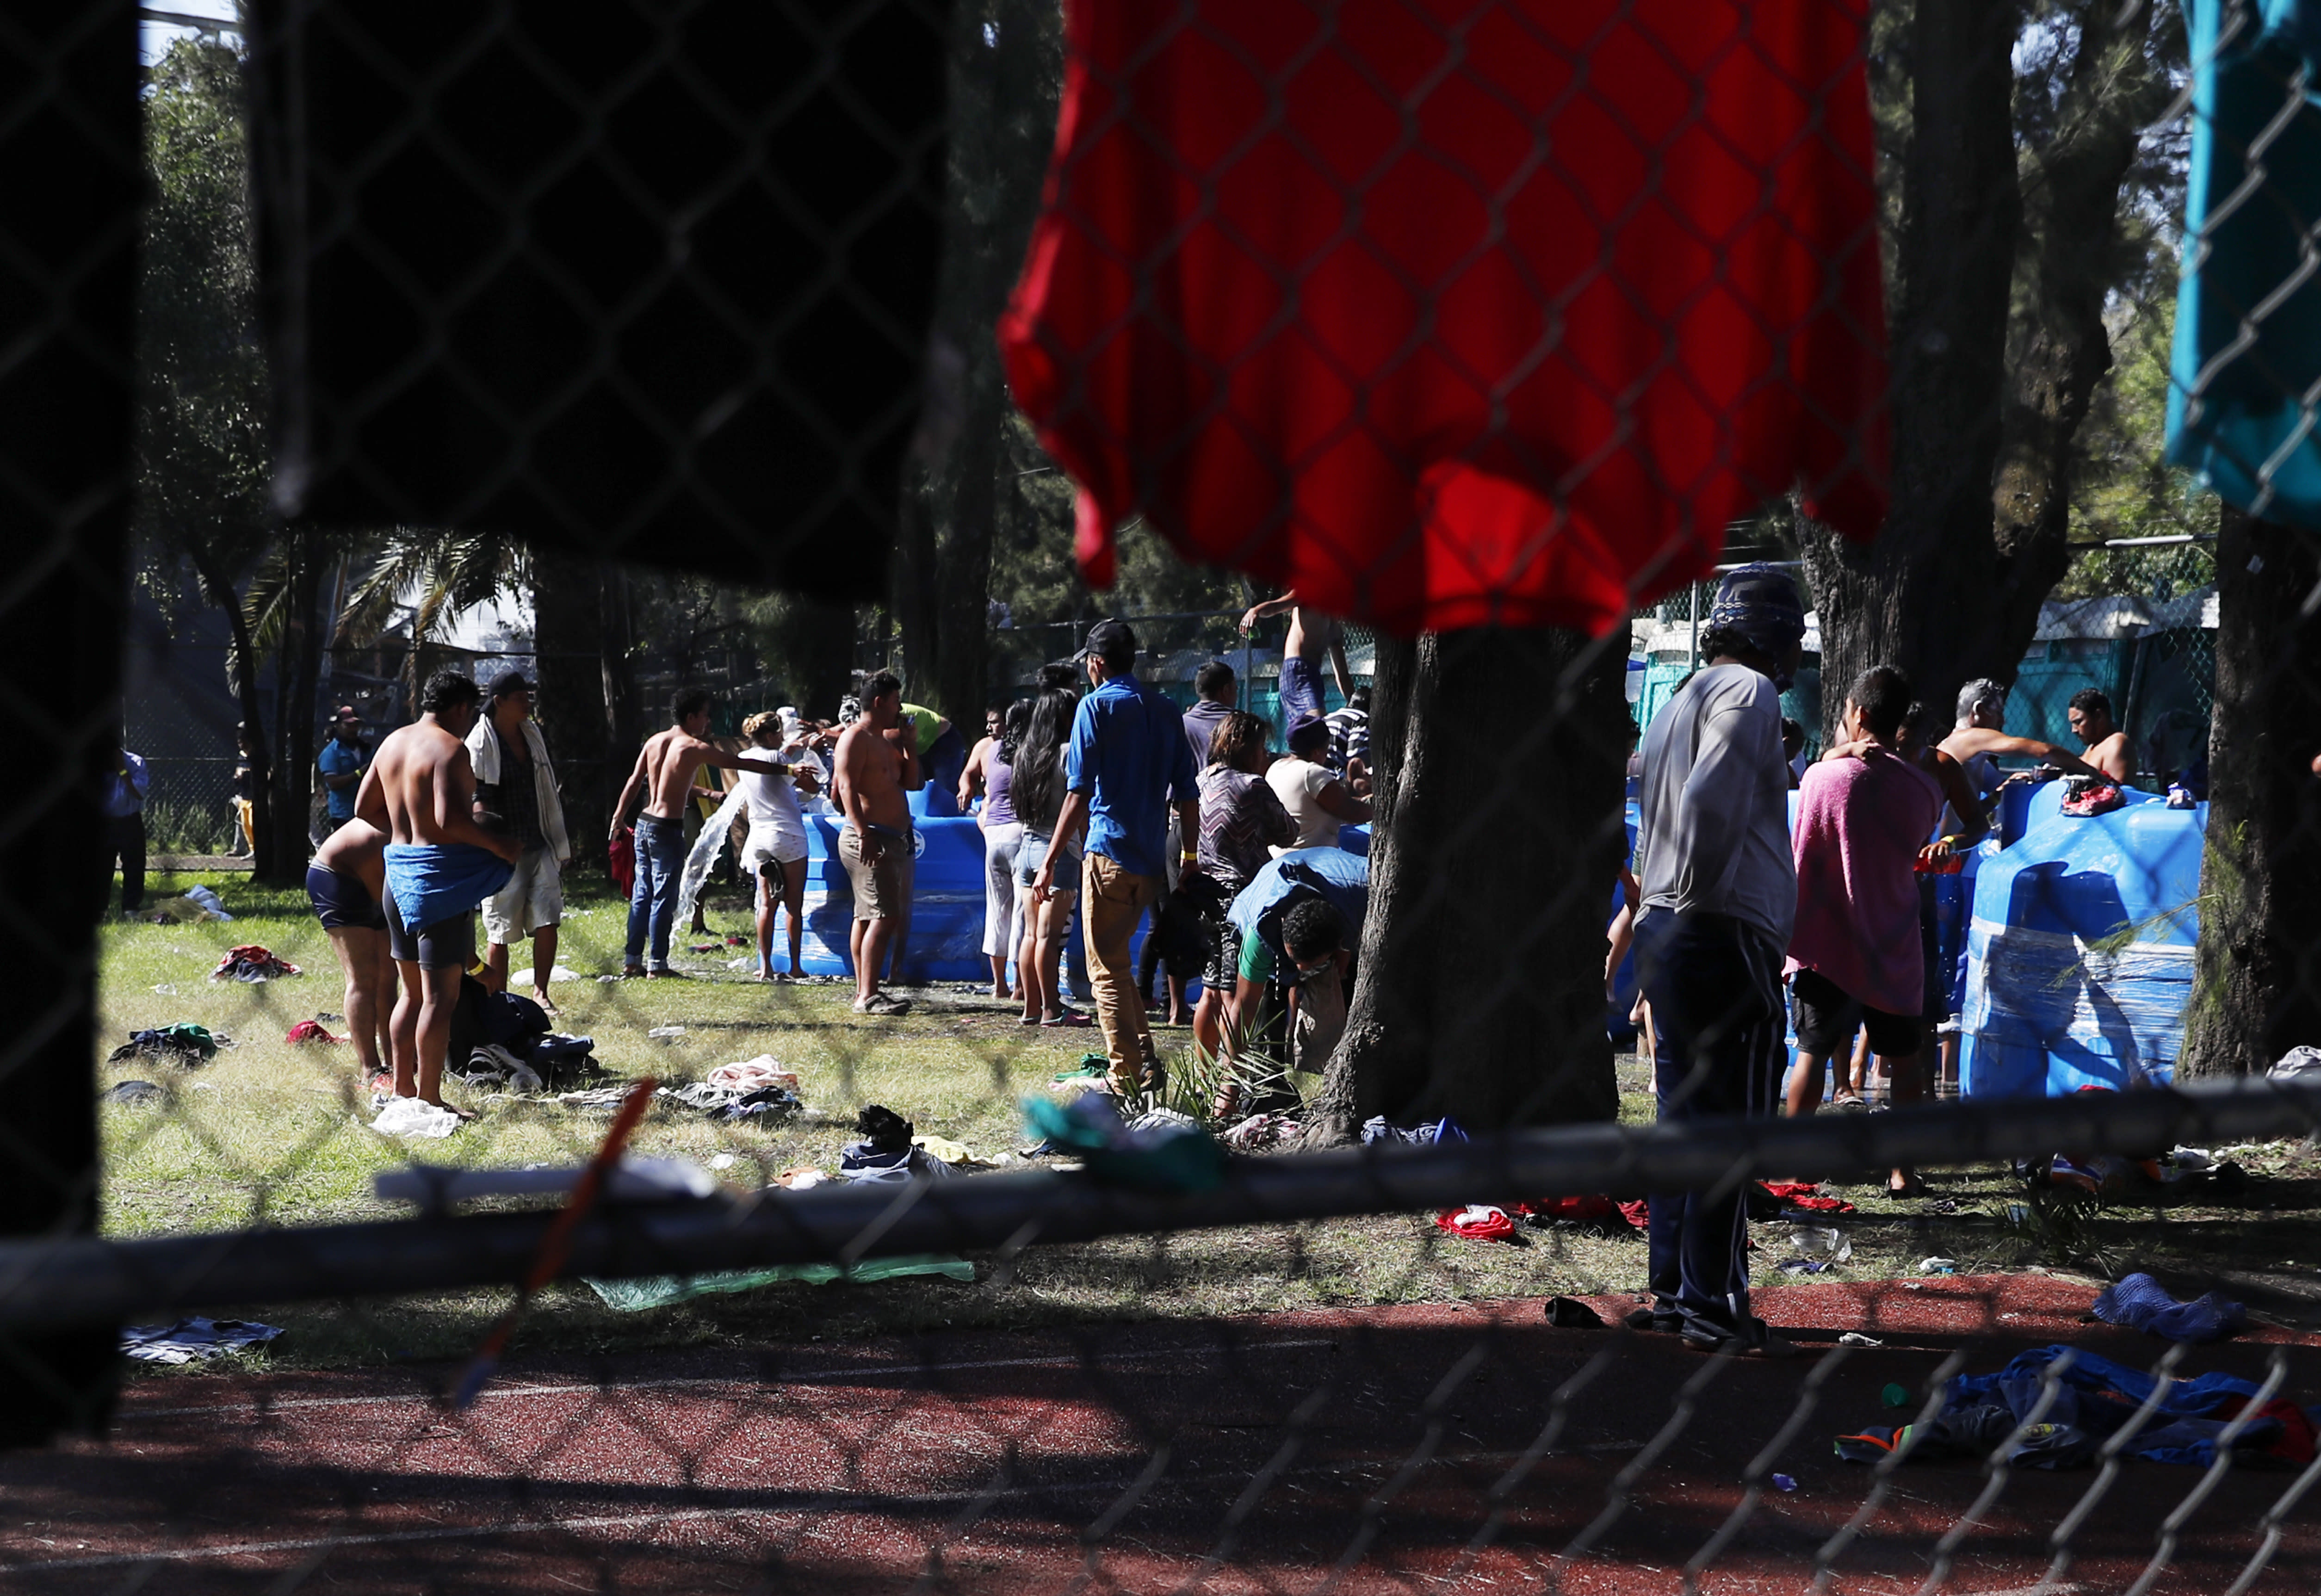 Central American migrants line up in front of water tanks at the Jesus Martinez stadium in Mexico City, Tuesday, Nov. 6, 2018. Humanitarian aid converged around the stadium in Mexico City where thousands of Central American migrants winding their way toward the United States were resting Tuesday after an arduous trek that has taken them through three countries in three weeks. (AP Photo/Marco Ugarte)